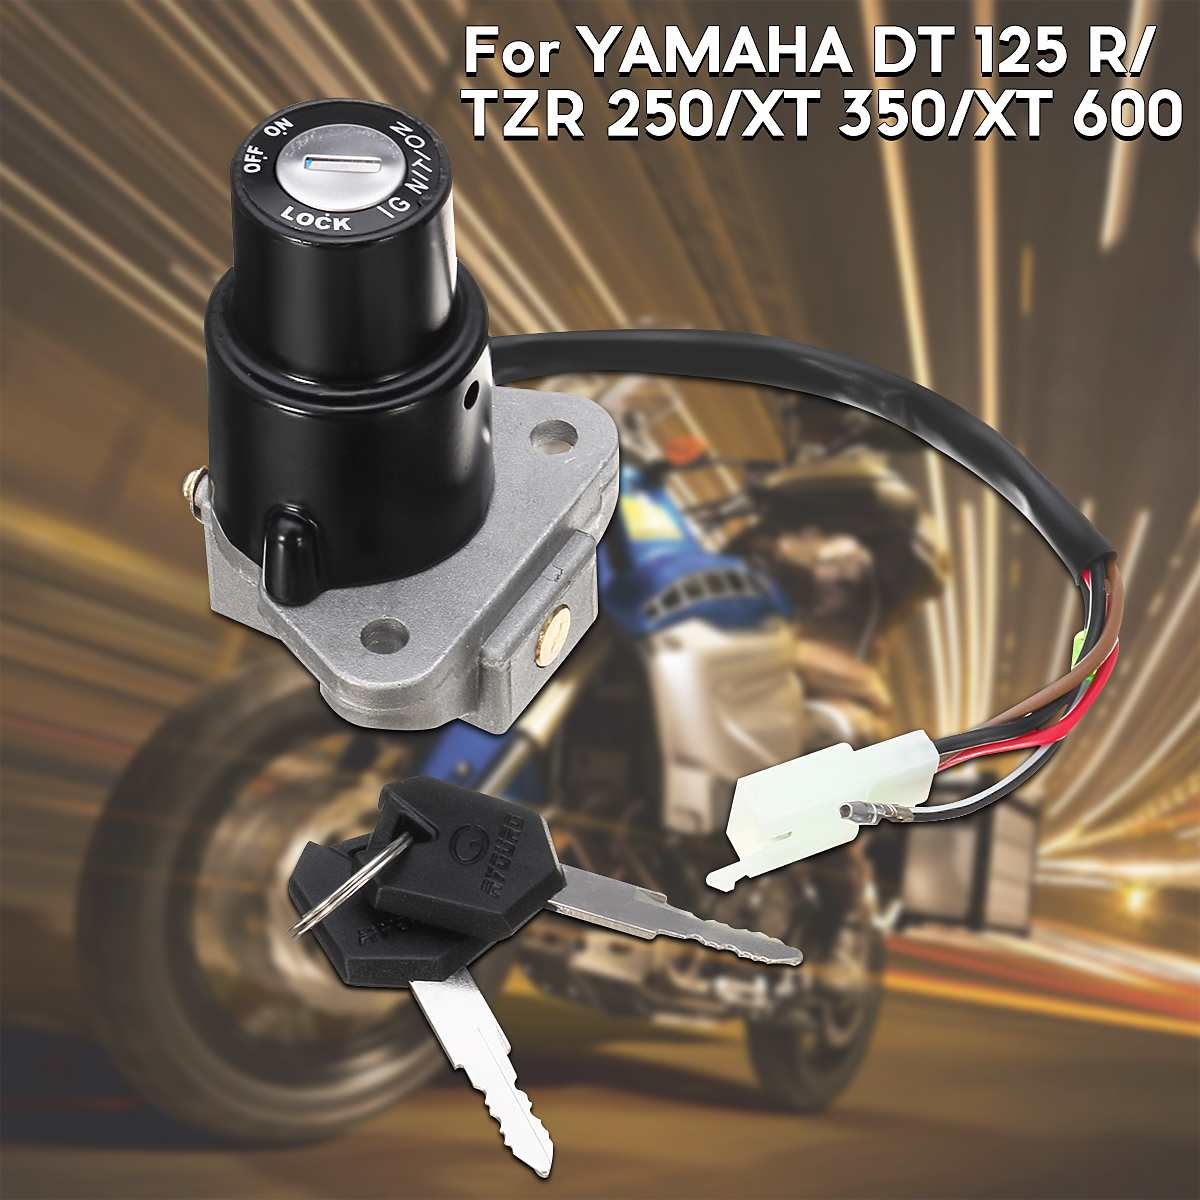 Motorcycle Ignition Switch Lock Assembly 3-Pin W/Keys Fit For YAMAHA DT 125 R/TZR 250/XT 350/XT 600